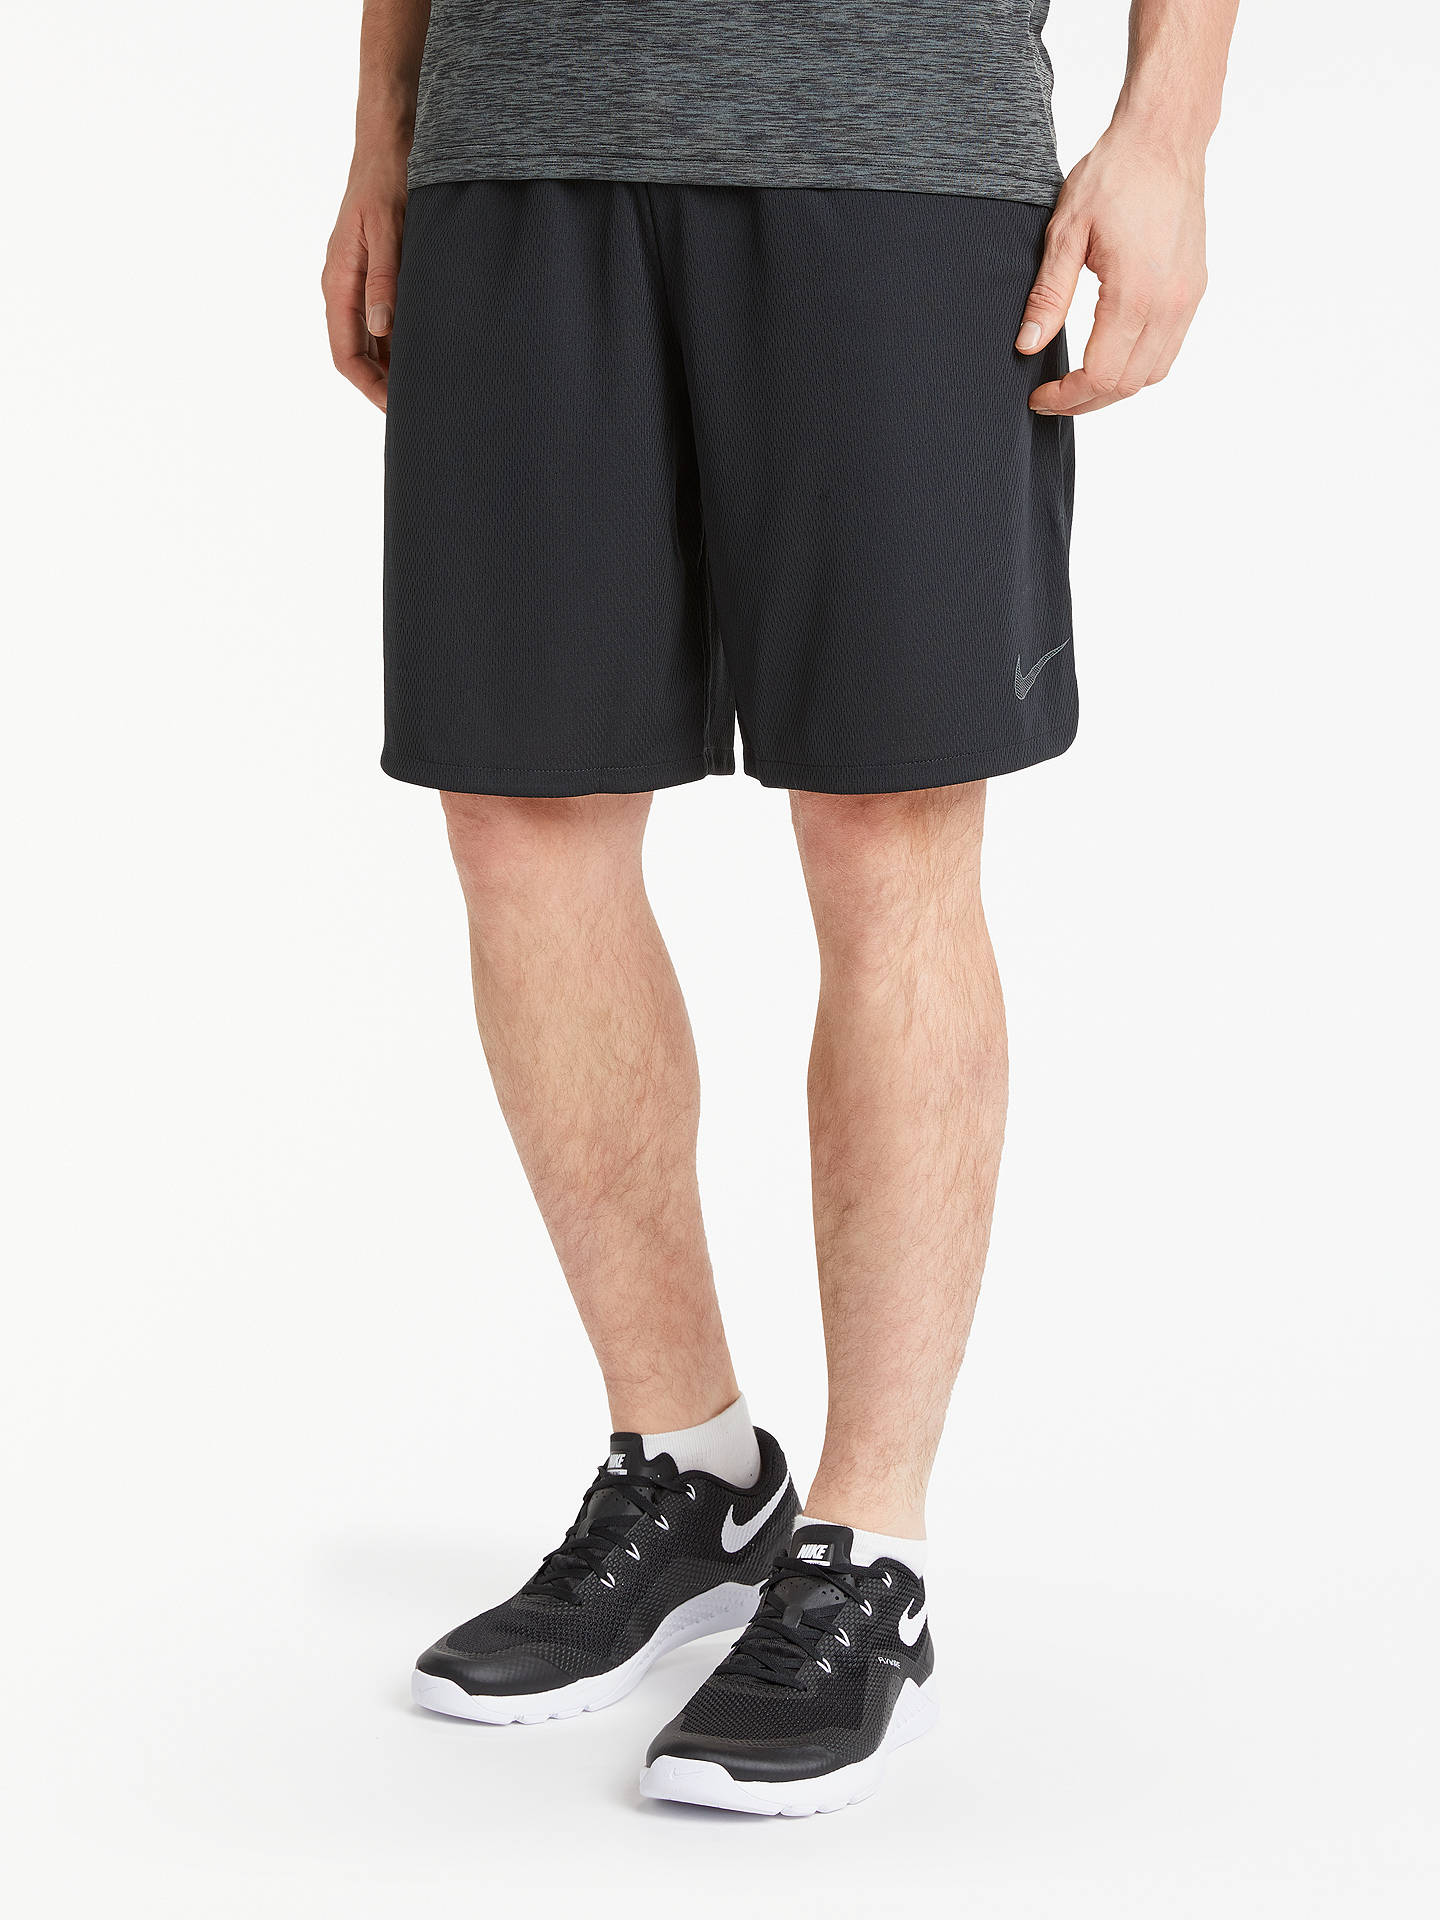 04be2bdabff2e Buy Nike Dry 4.0 Training Shorts, Black/Dark Grey, S Online at johnlewis ...